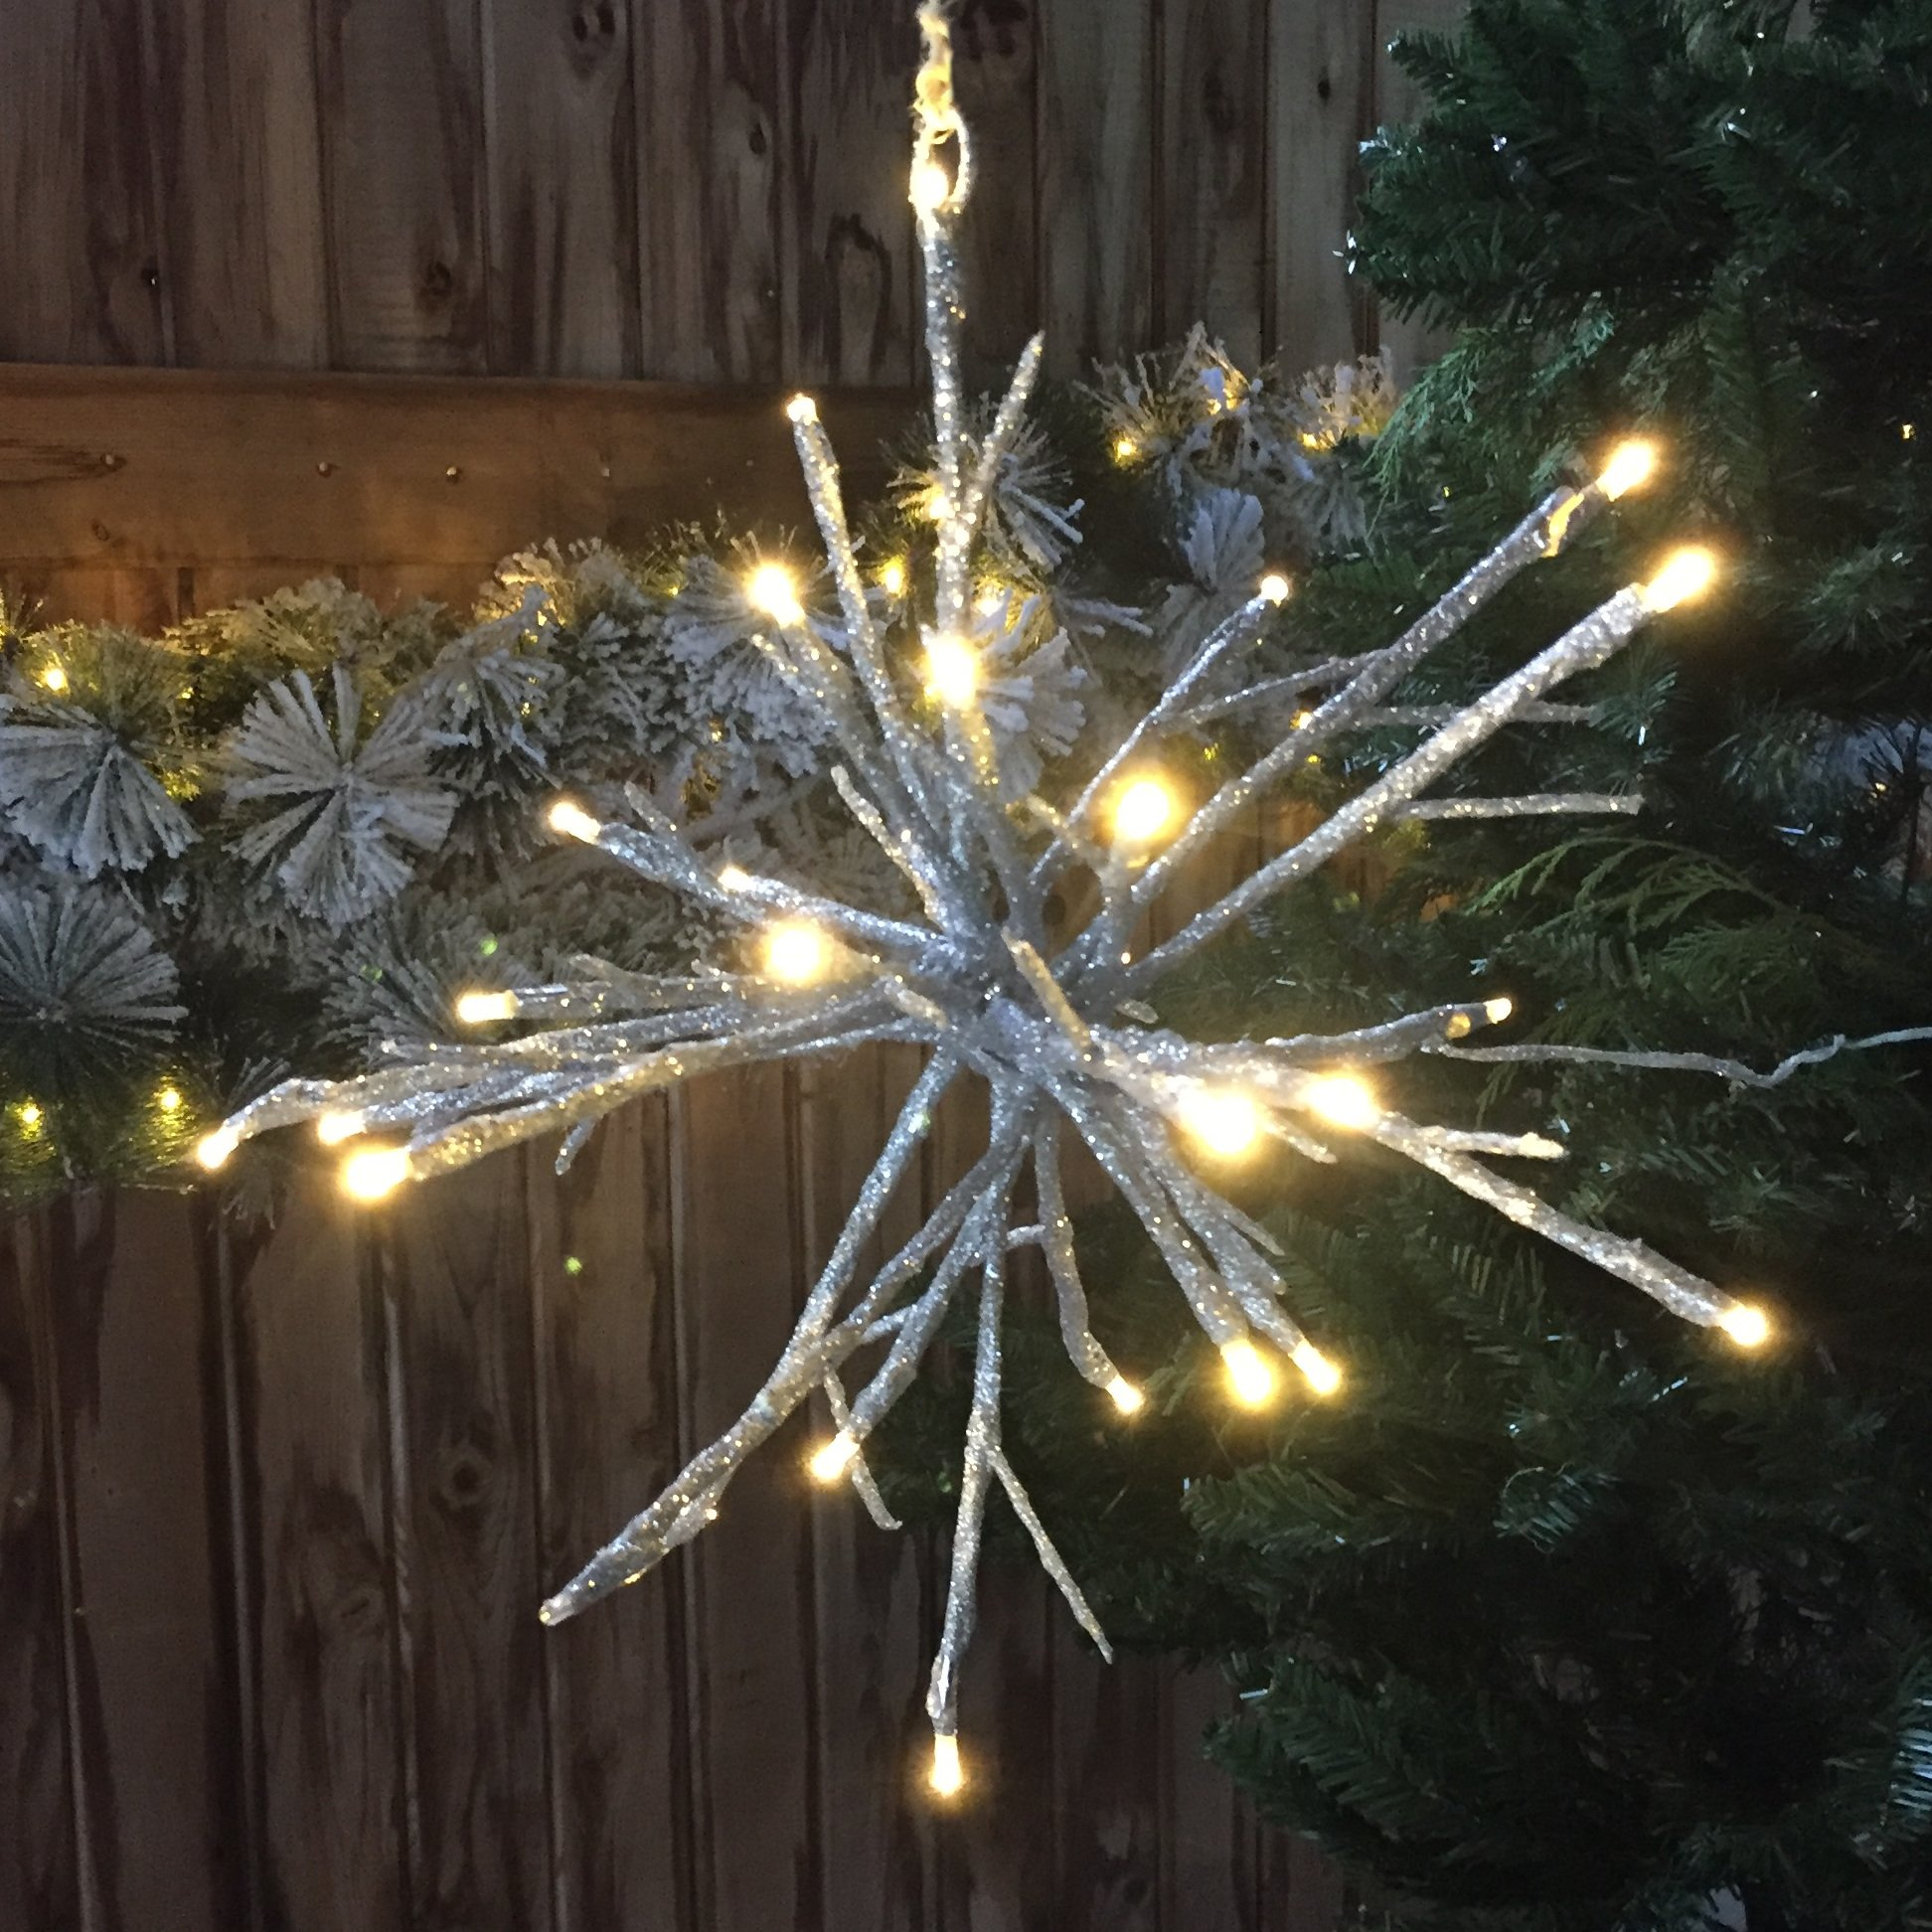 The Rustic Americana LED Silver Glitter Bendable Star Snowflake, 32 LED Brilliant Bulbs, Golden Light, Battery Powered, 3 AA Batteries, Approx. 1 Ft Diameter, By Whole House Worlds